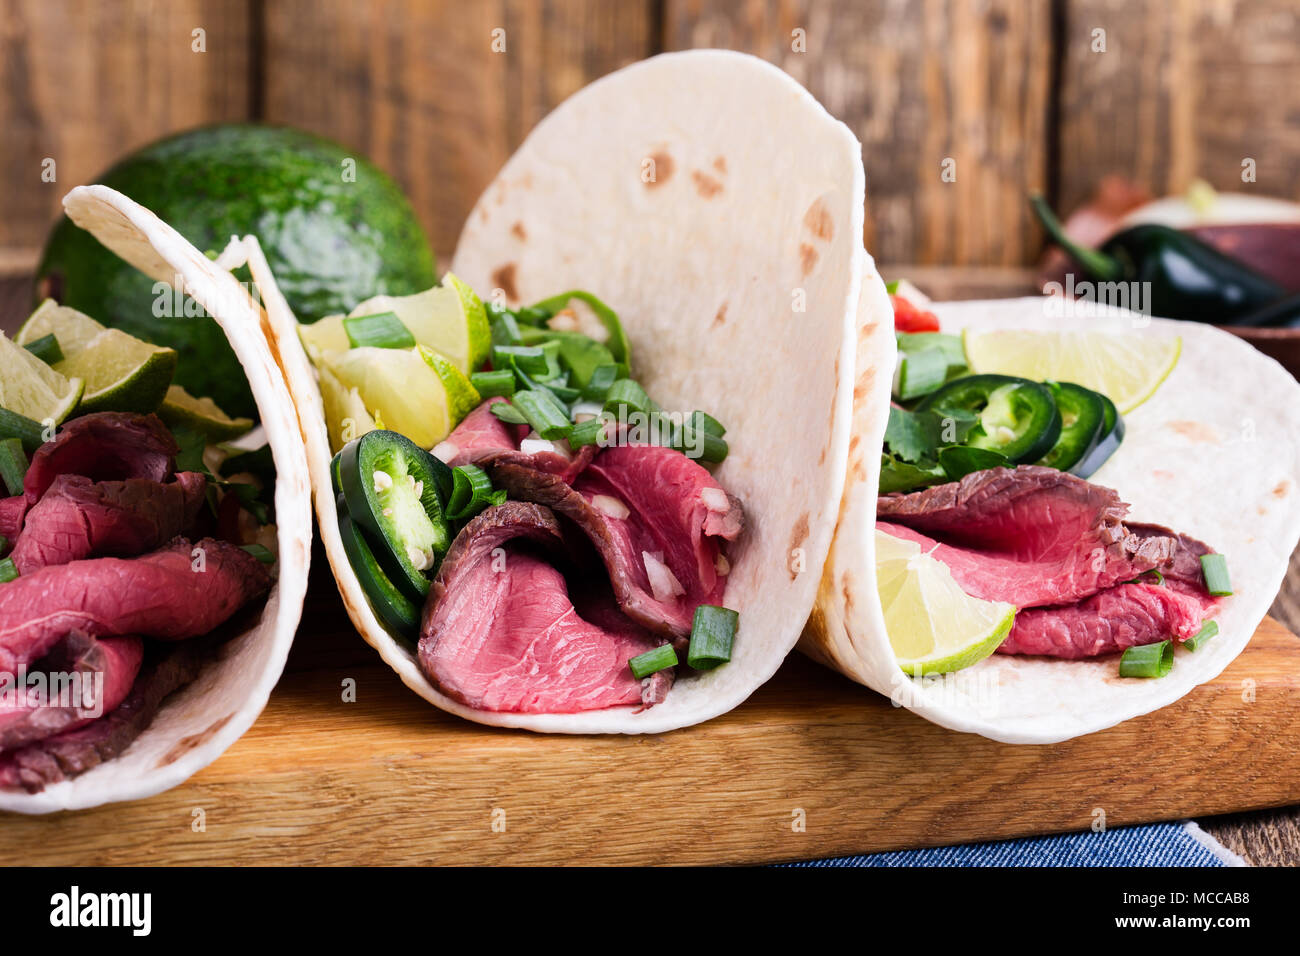 Tacos with beef steak and vegetables on wheat flour tortillas, Mexican style meal - Stock Image